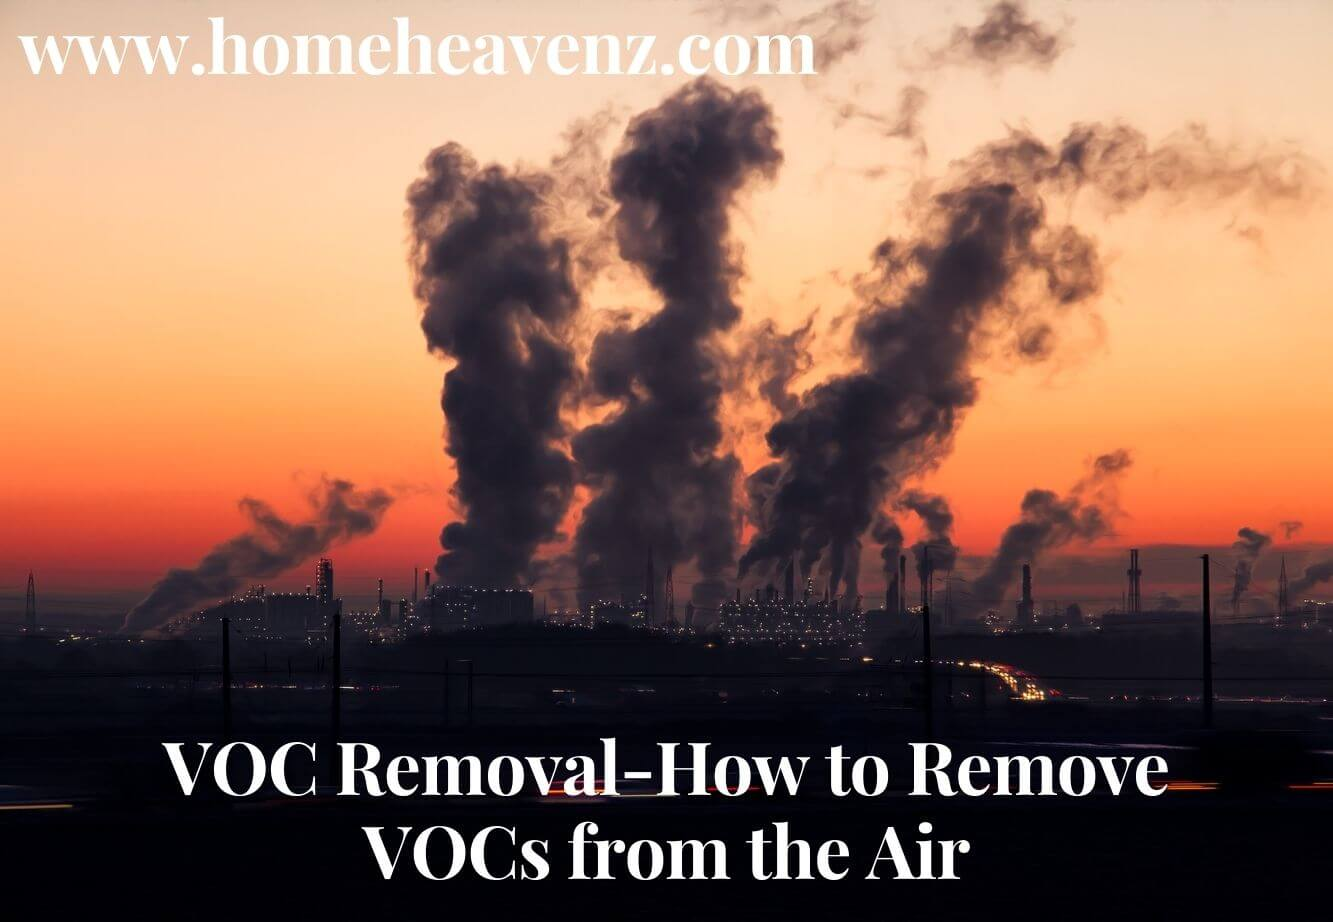 VOC Removal-How to Remove VOCs from the Air